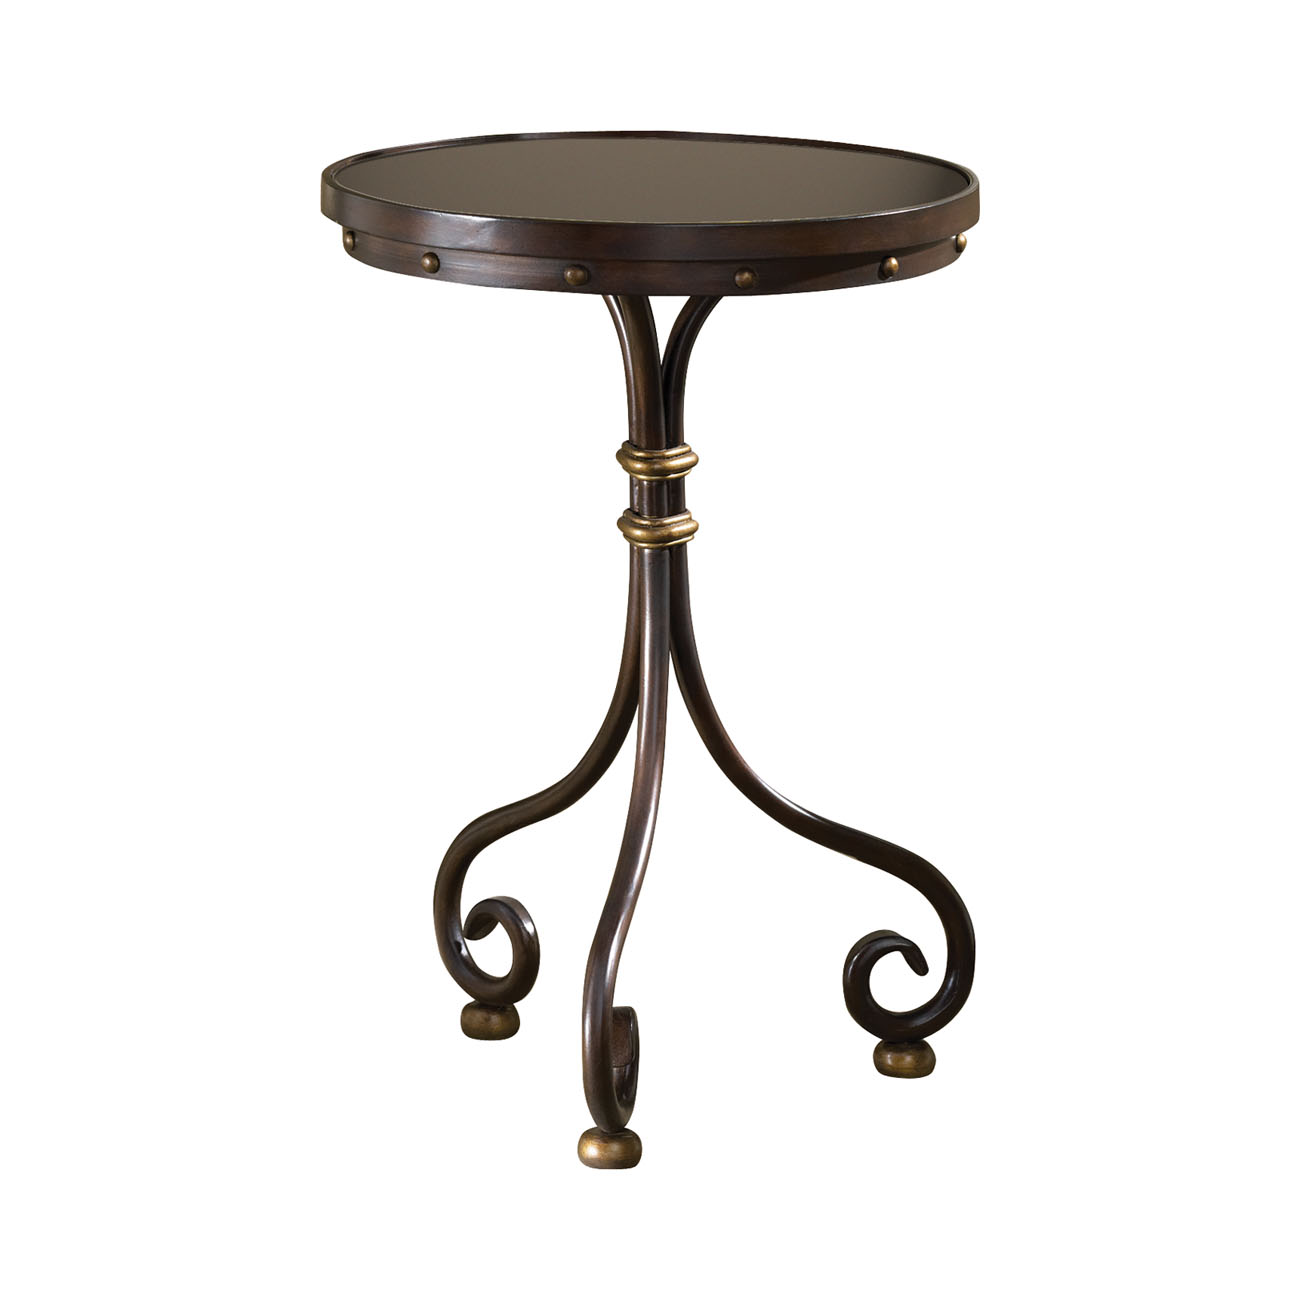 round accent tables with screw legs noone guessing this table decorator sound percussion drum throne patio dining floor trim clear lucite astoria leather sofa pottery coffee